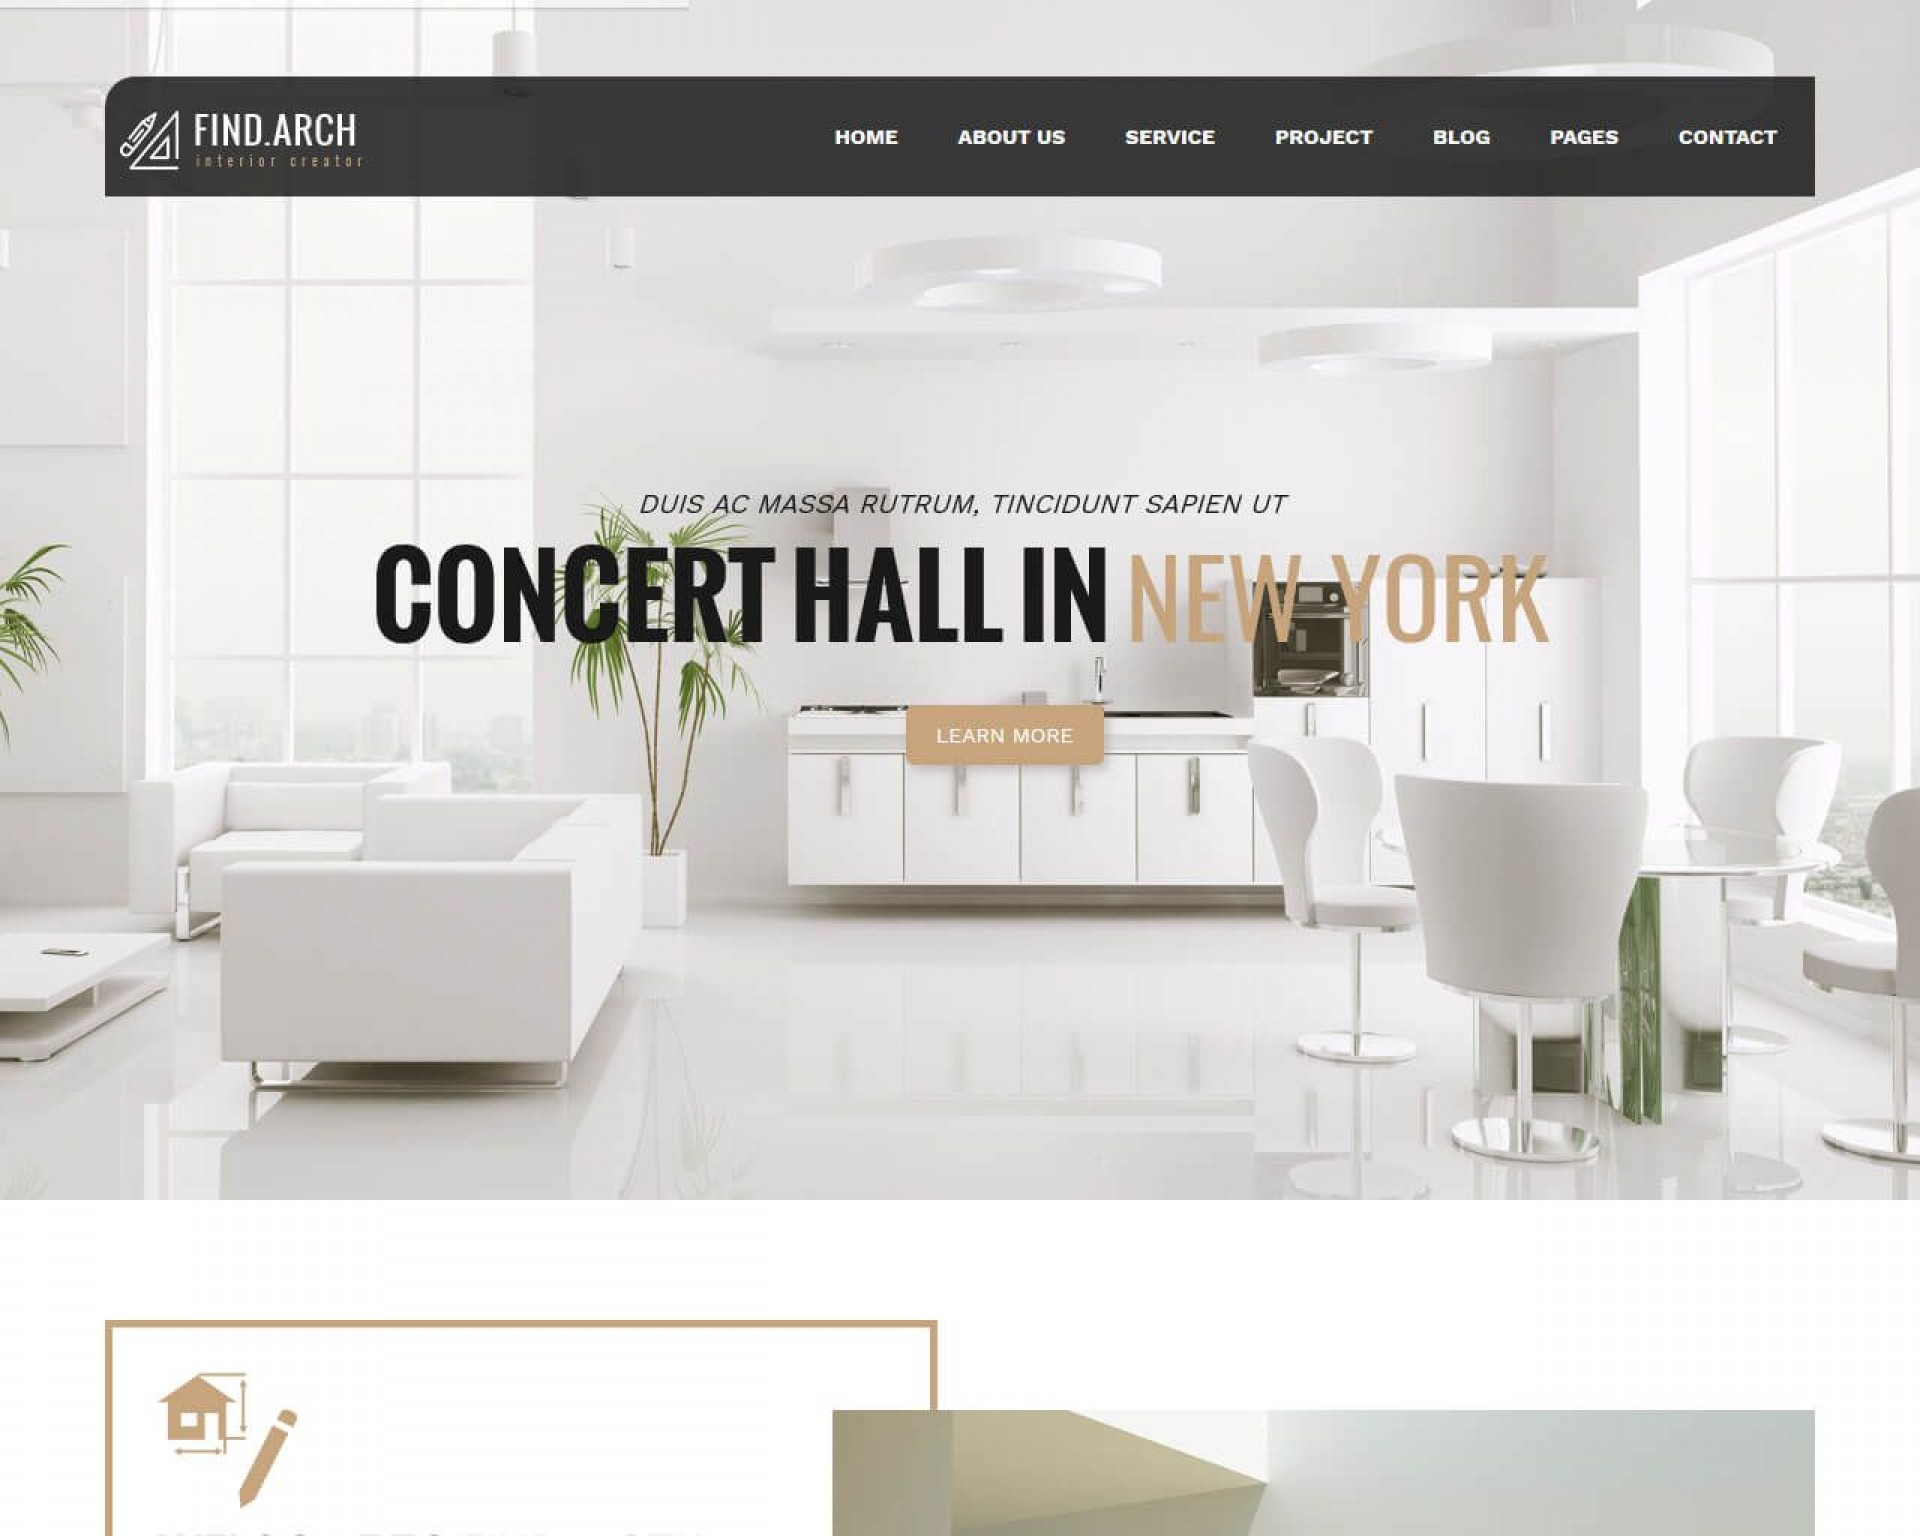 003 Simple Interior Design Website Template Highest Quality  Templates Company Free Download Html1920